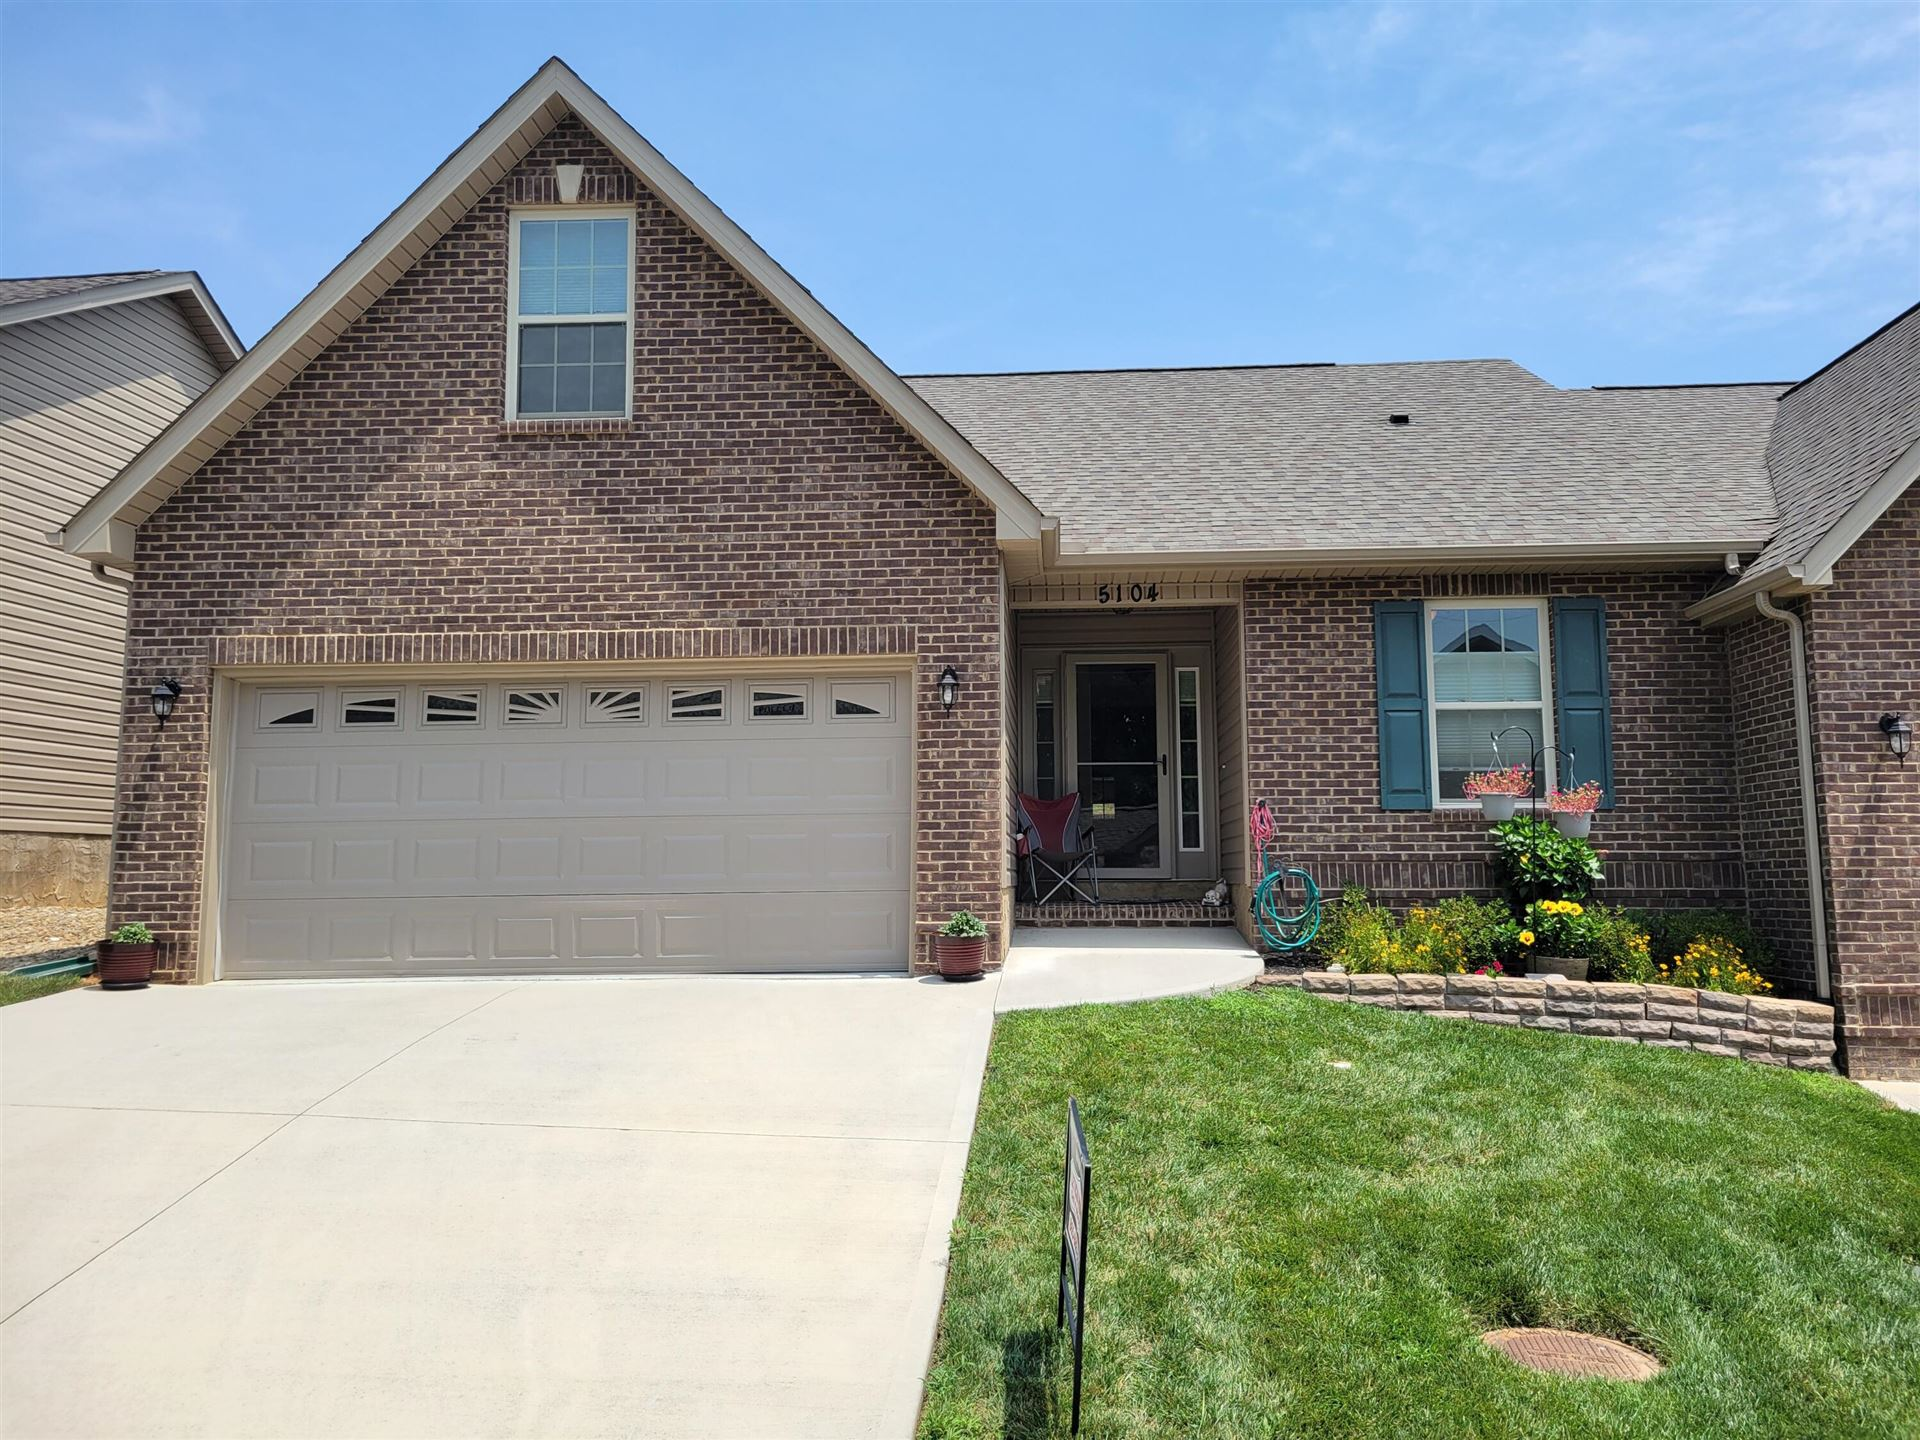 Photo of 5104 Rocky Branch Way, Knoxville, TN 37918 (MLS # 1162189)